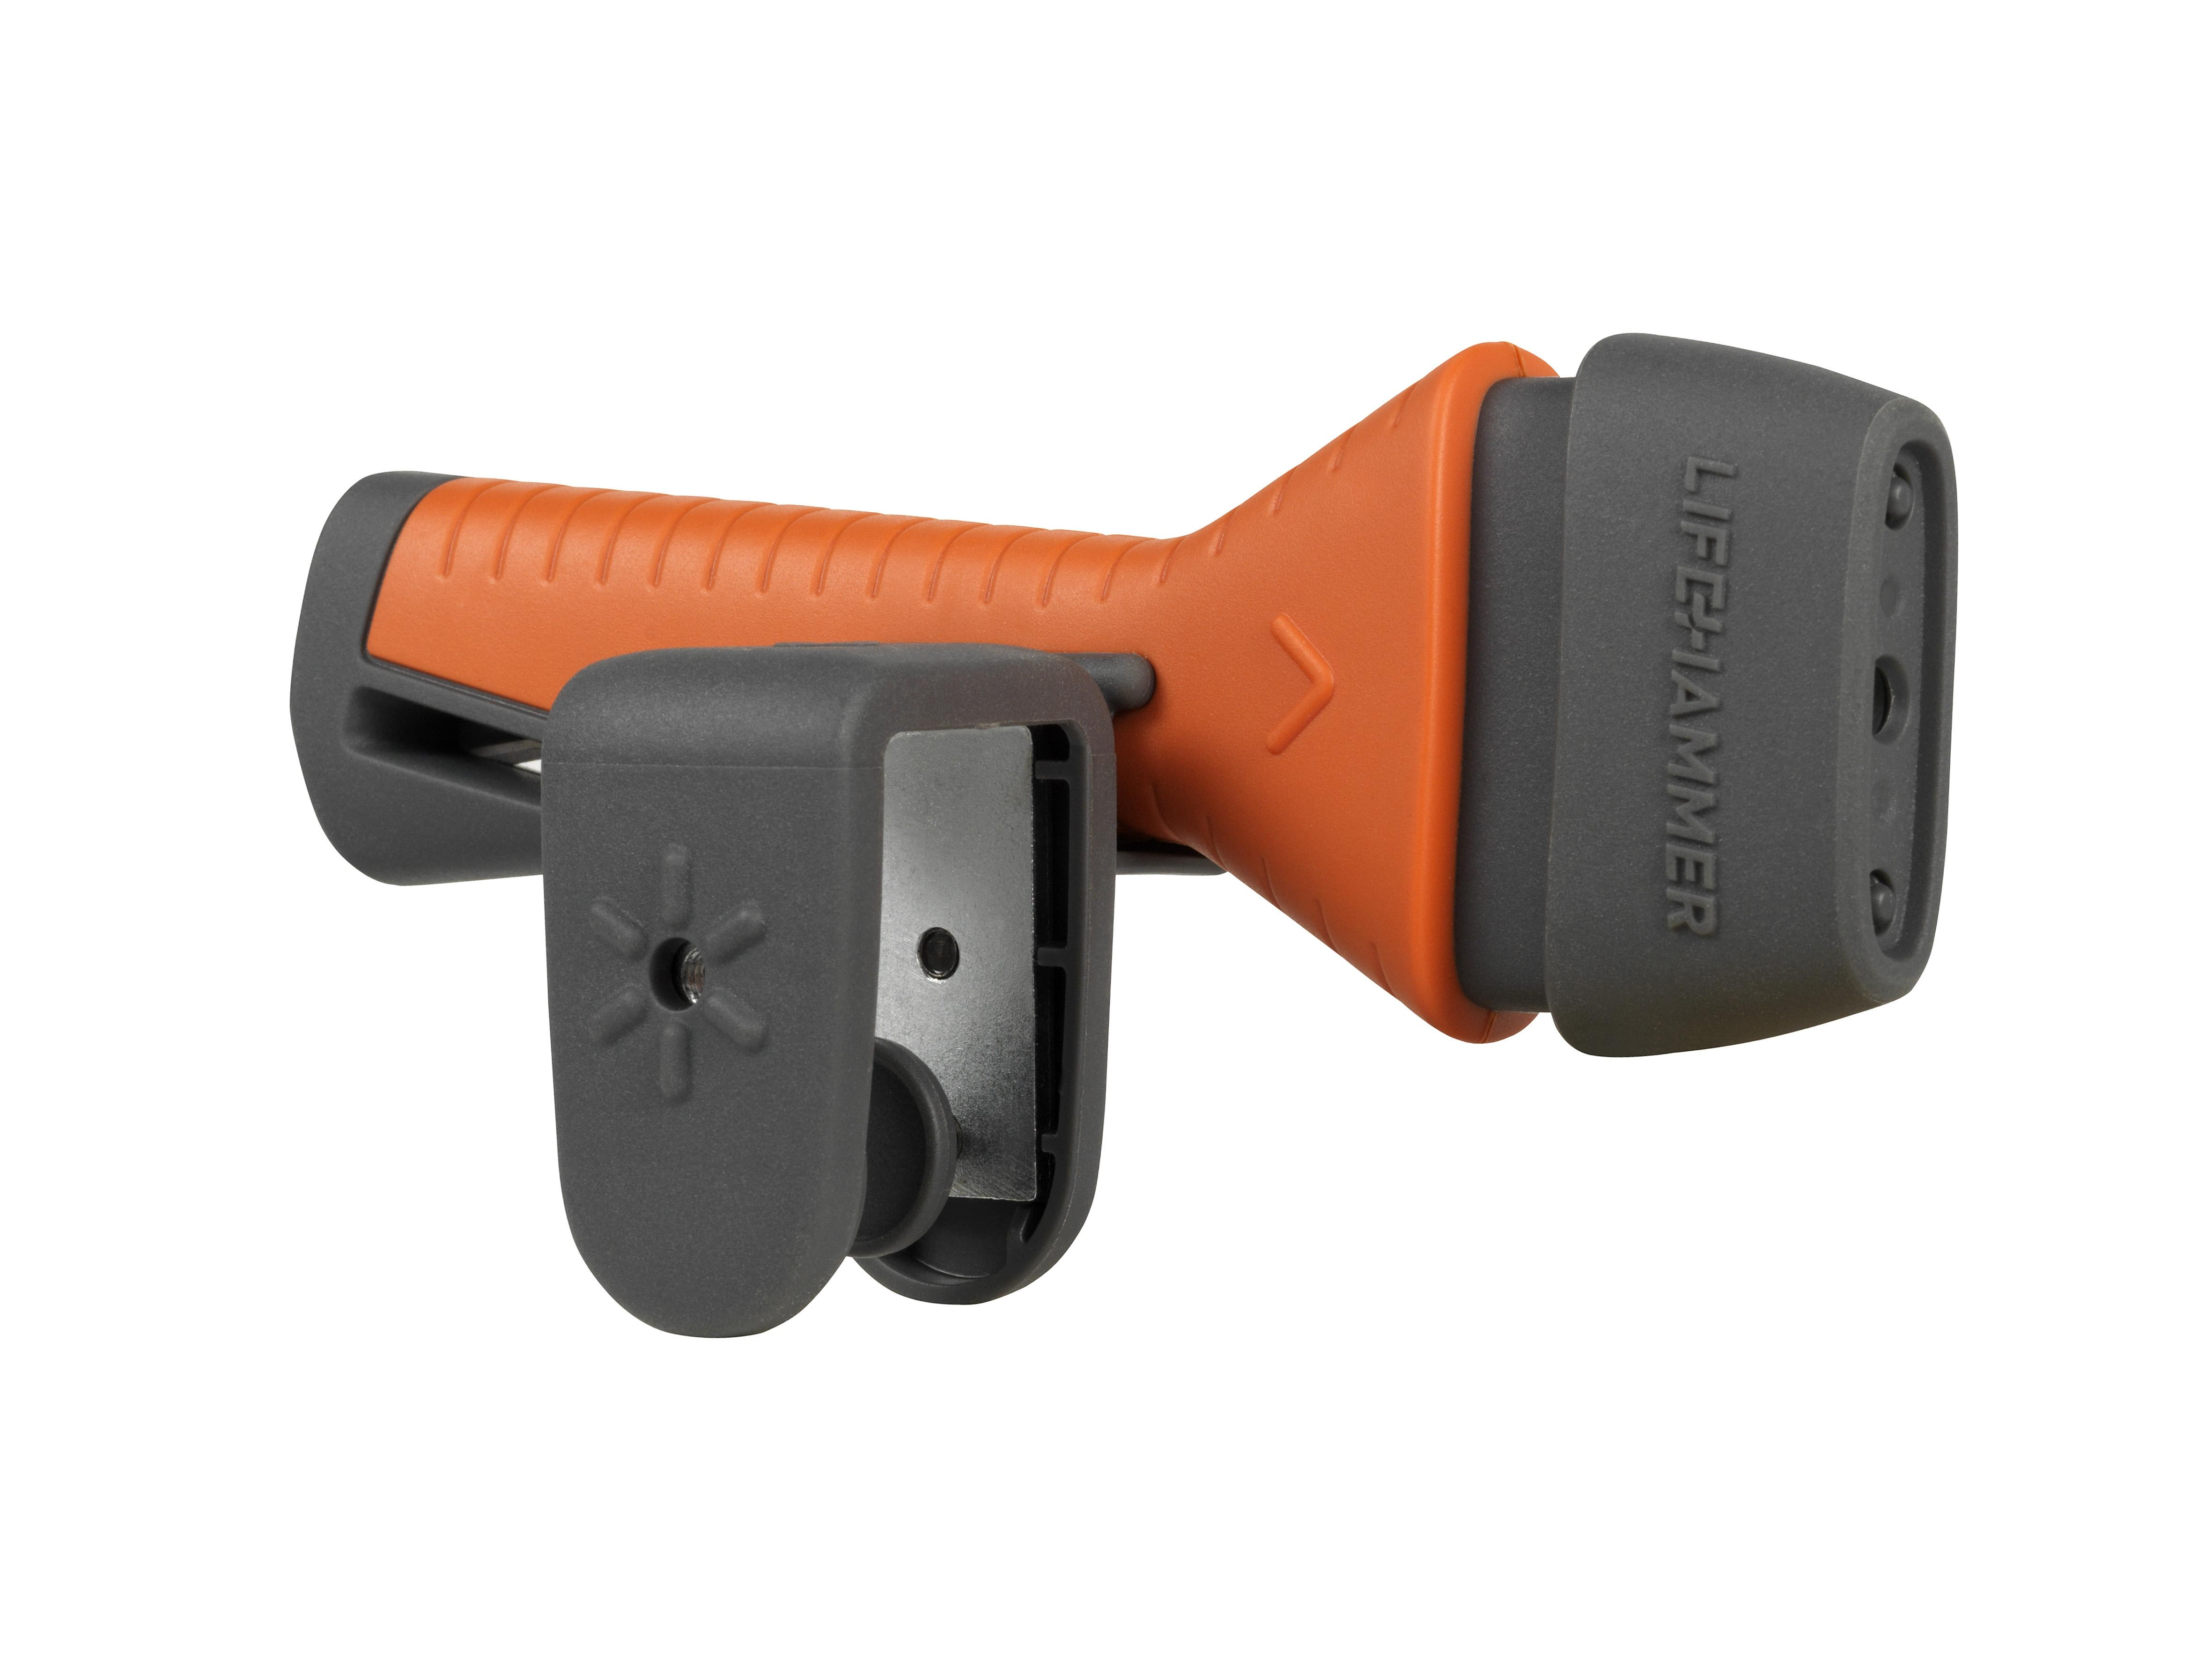 HENO1QCSBL LifeHammer from manufacturer up to - 32% off!